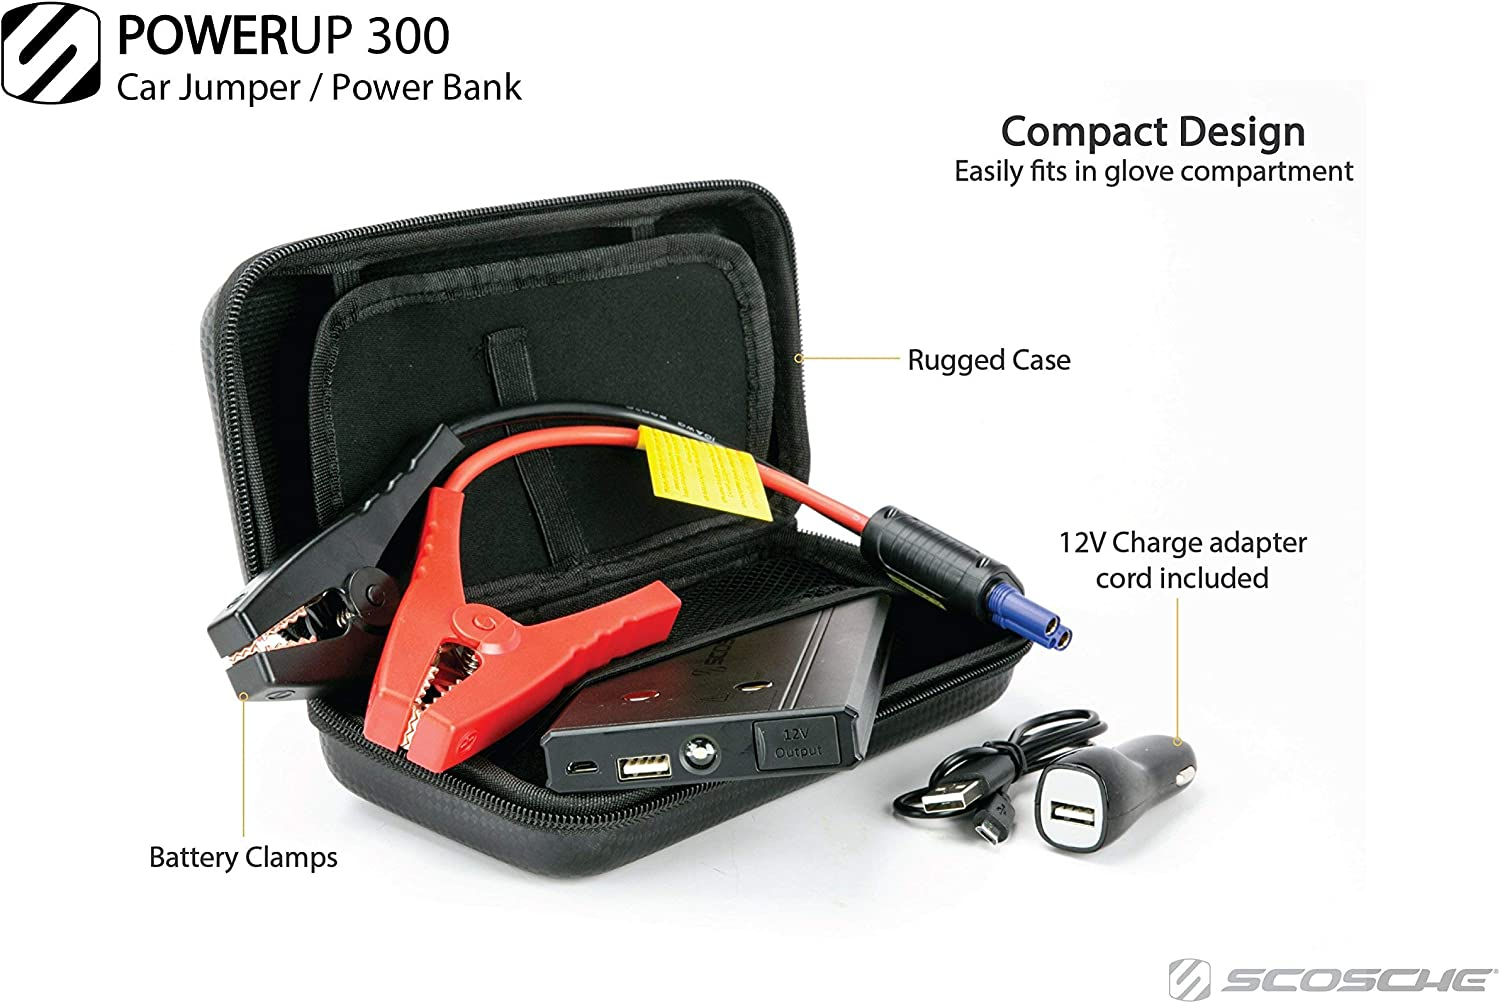 SCOSCHE PBJ300-1 PowerUp 300 Portable Car Jump Starter with 5,400 mAh 300A Portable Battery USB Port and Built-in LED Flashlight for use with Batteries in 4 and 6-Cylinder Vehicles or Motorcycles